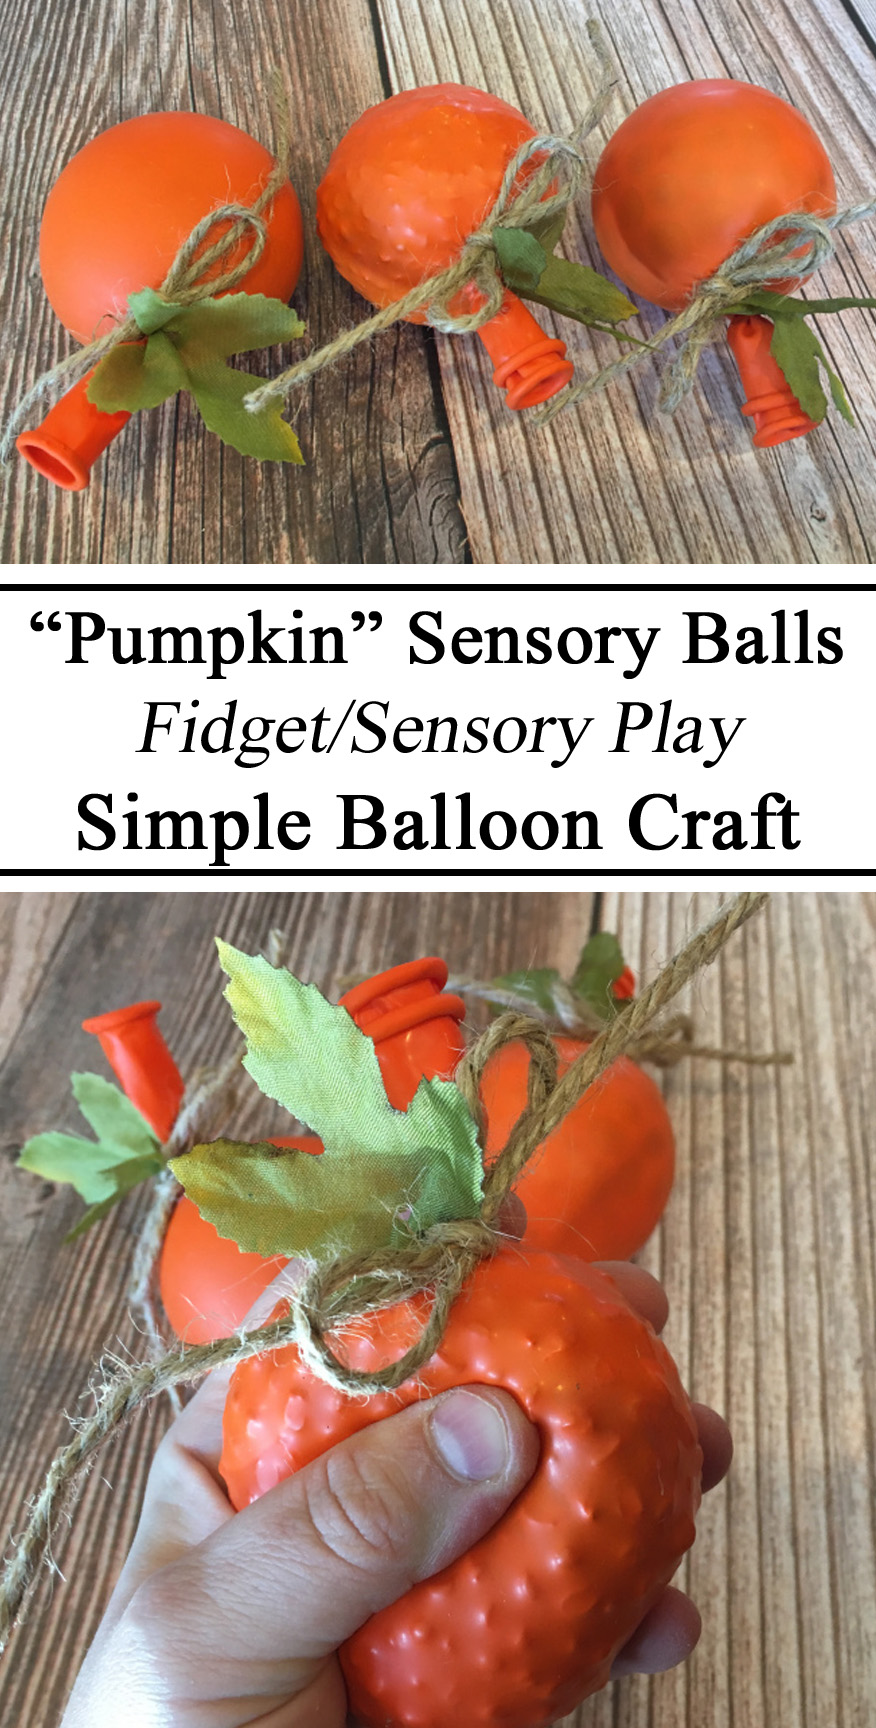 Sensory Play, Sensory Activity, Toddlers, fidget toy, Balloon Craft, Pumpkin, Nature, Seeds, Hands on Learning, DIY, Toddlers, Preschool, Resources, Inspiration, Teachers, Parents, Stay at Home Mom, Fall, Autumn, Montessori, Waldorf, Homeschool, Homeschooling